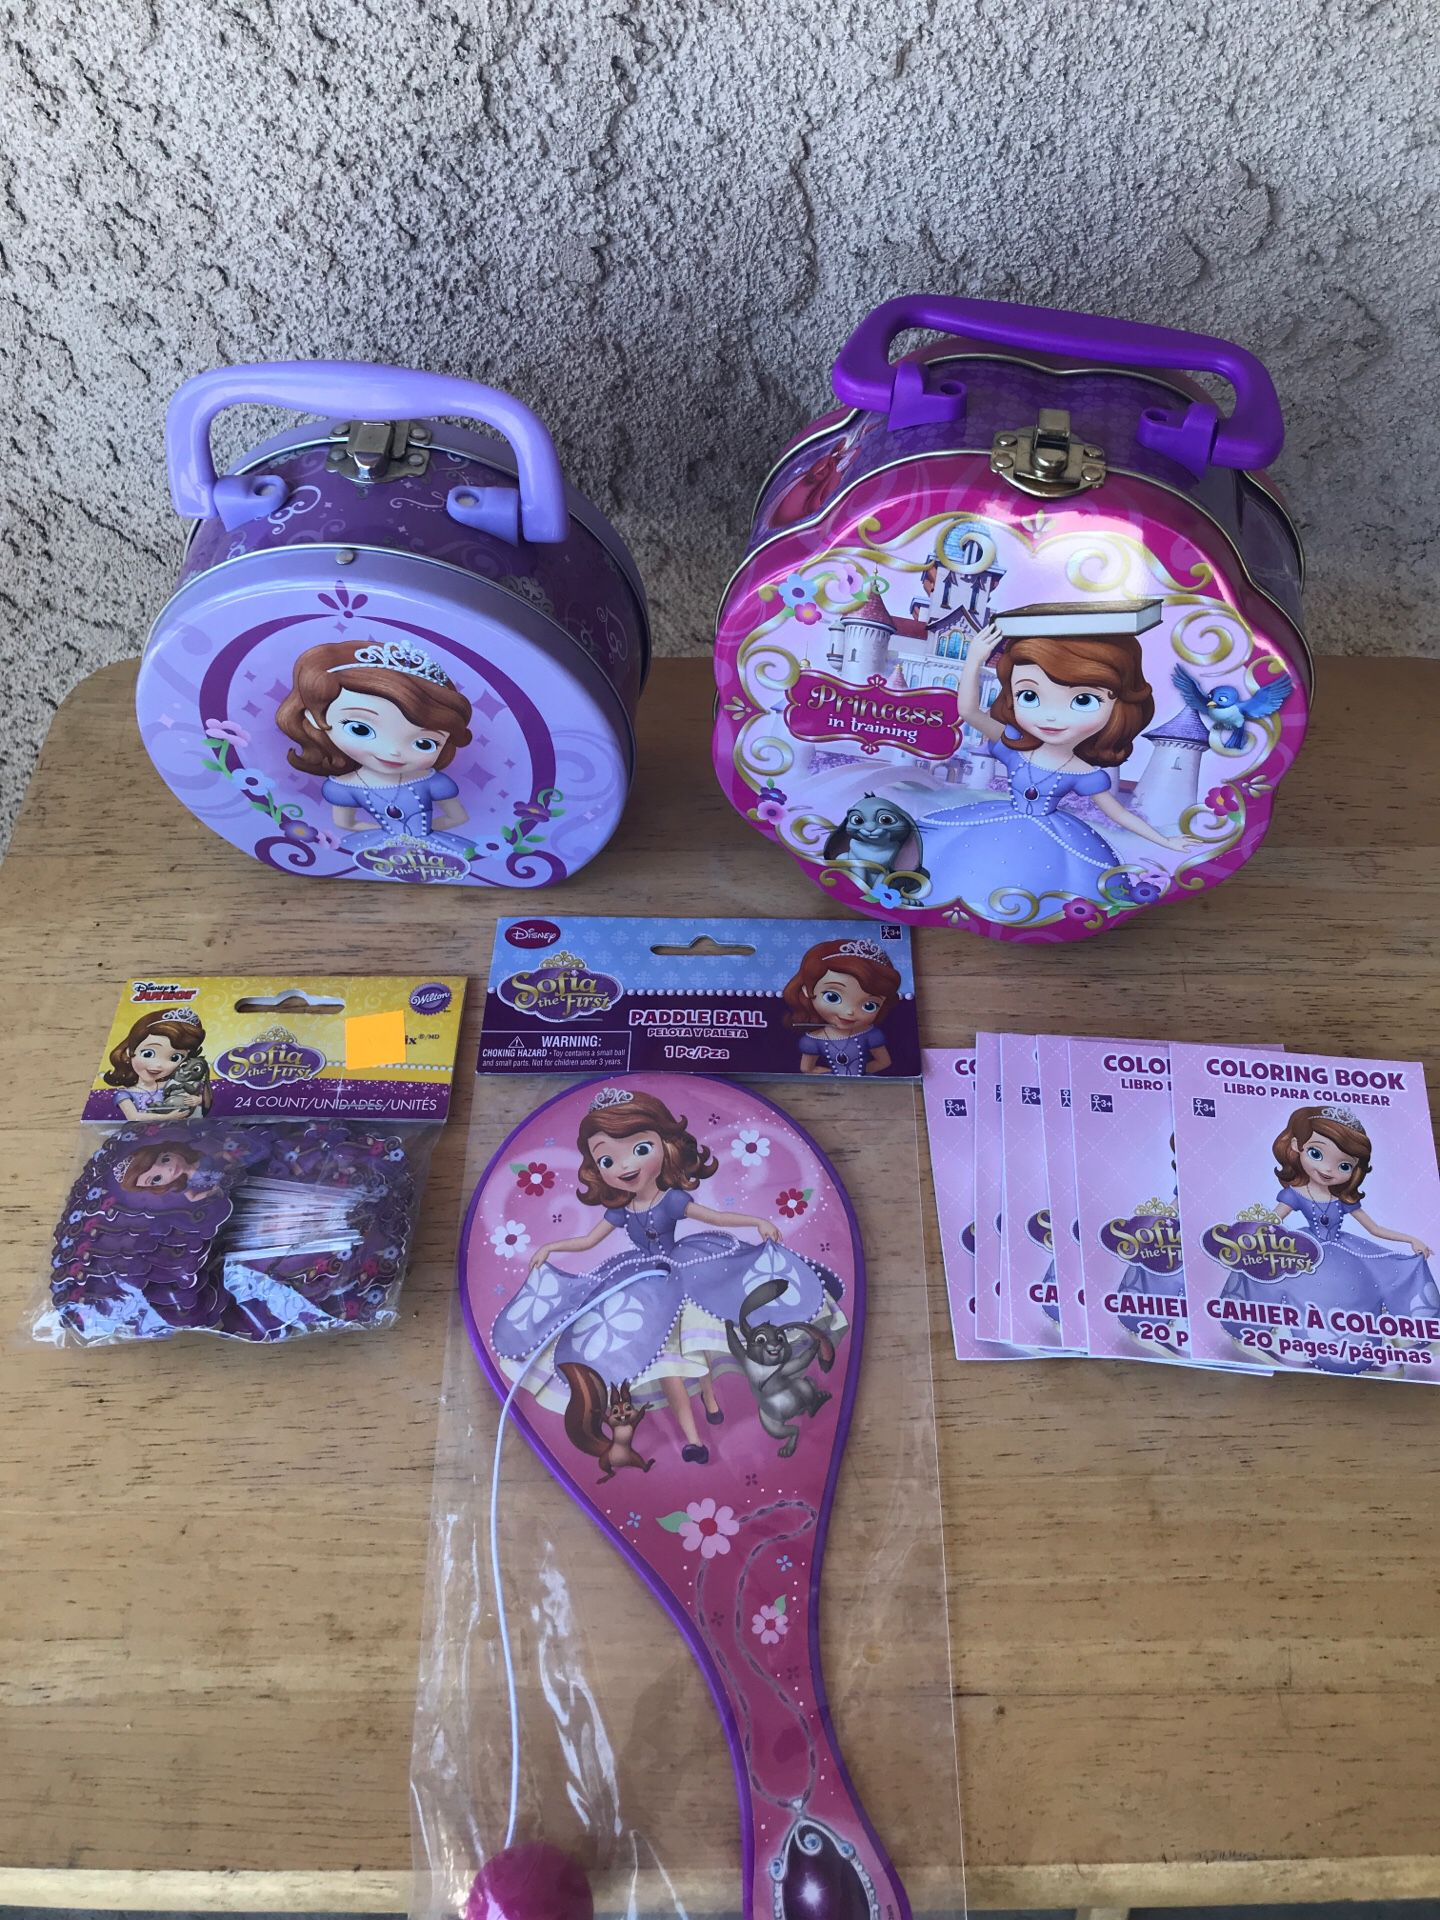 DISNEY SOFIA THE FIRST BIRTHDAY PARTY DECORATIONS AND PARTY FAVORS